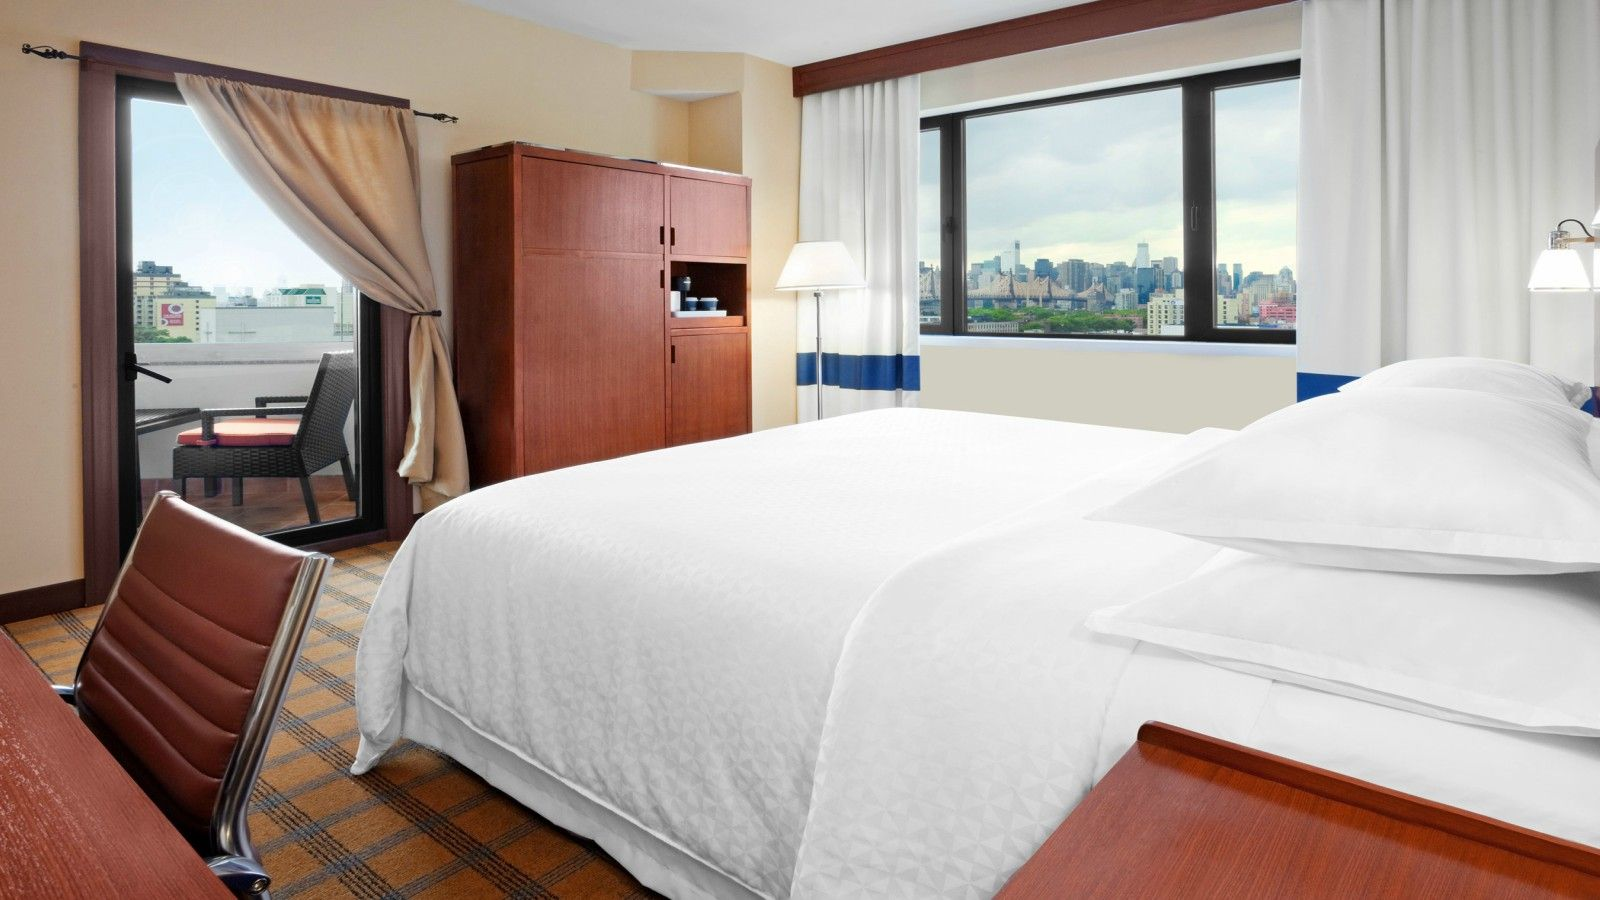 Long Island City Accommodations - Accessible Room